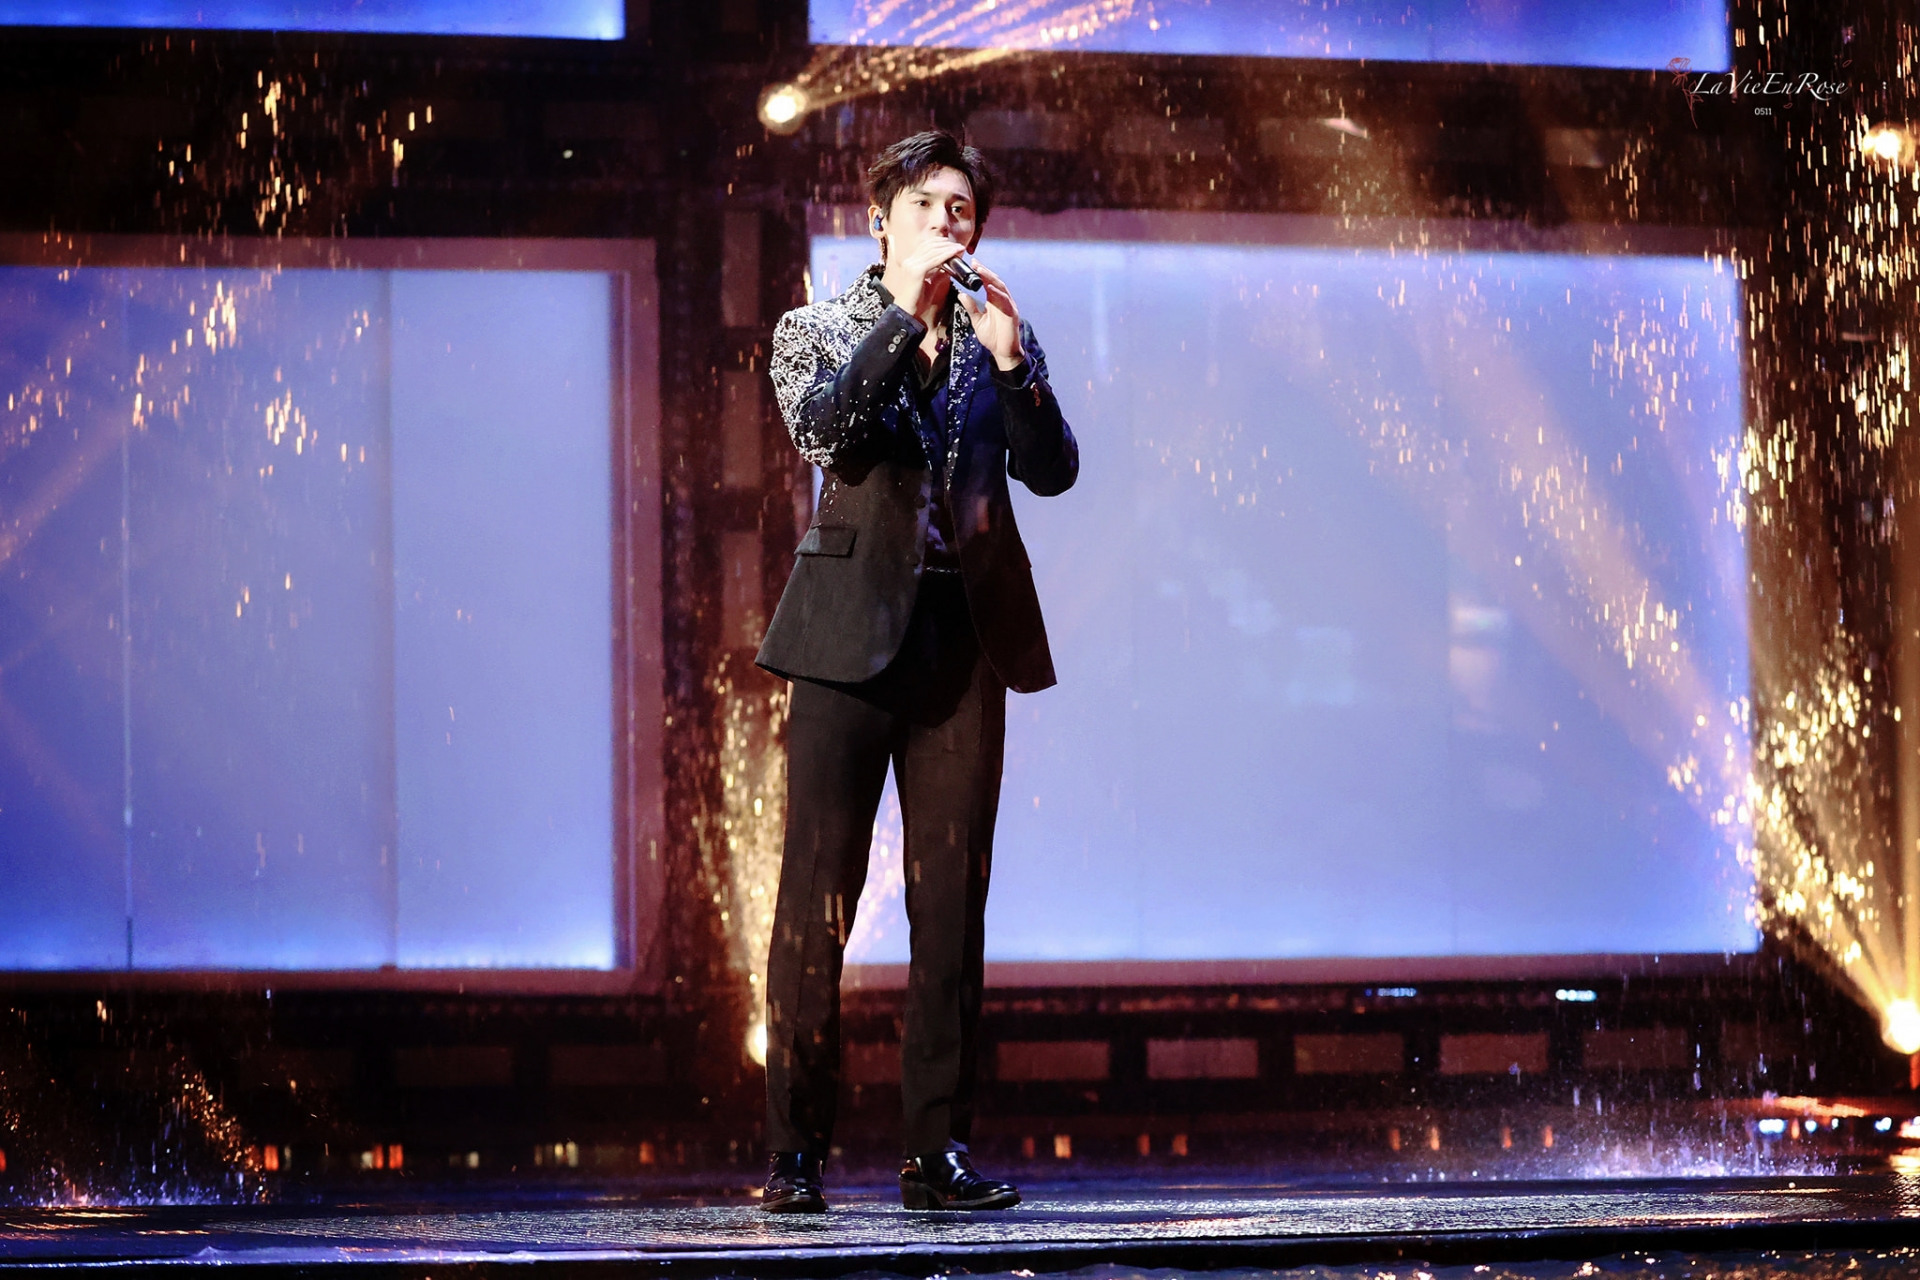 Truong Triet Han will hold a concert in July, Cnet is bored 'let's be an actor' 2